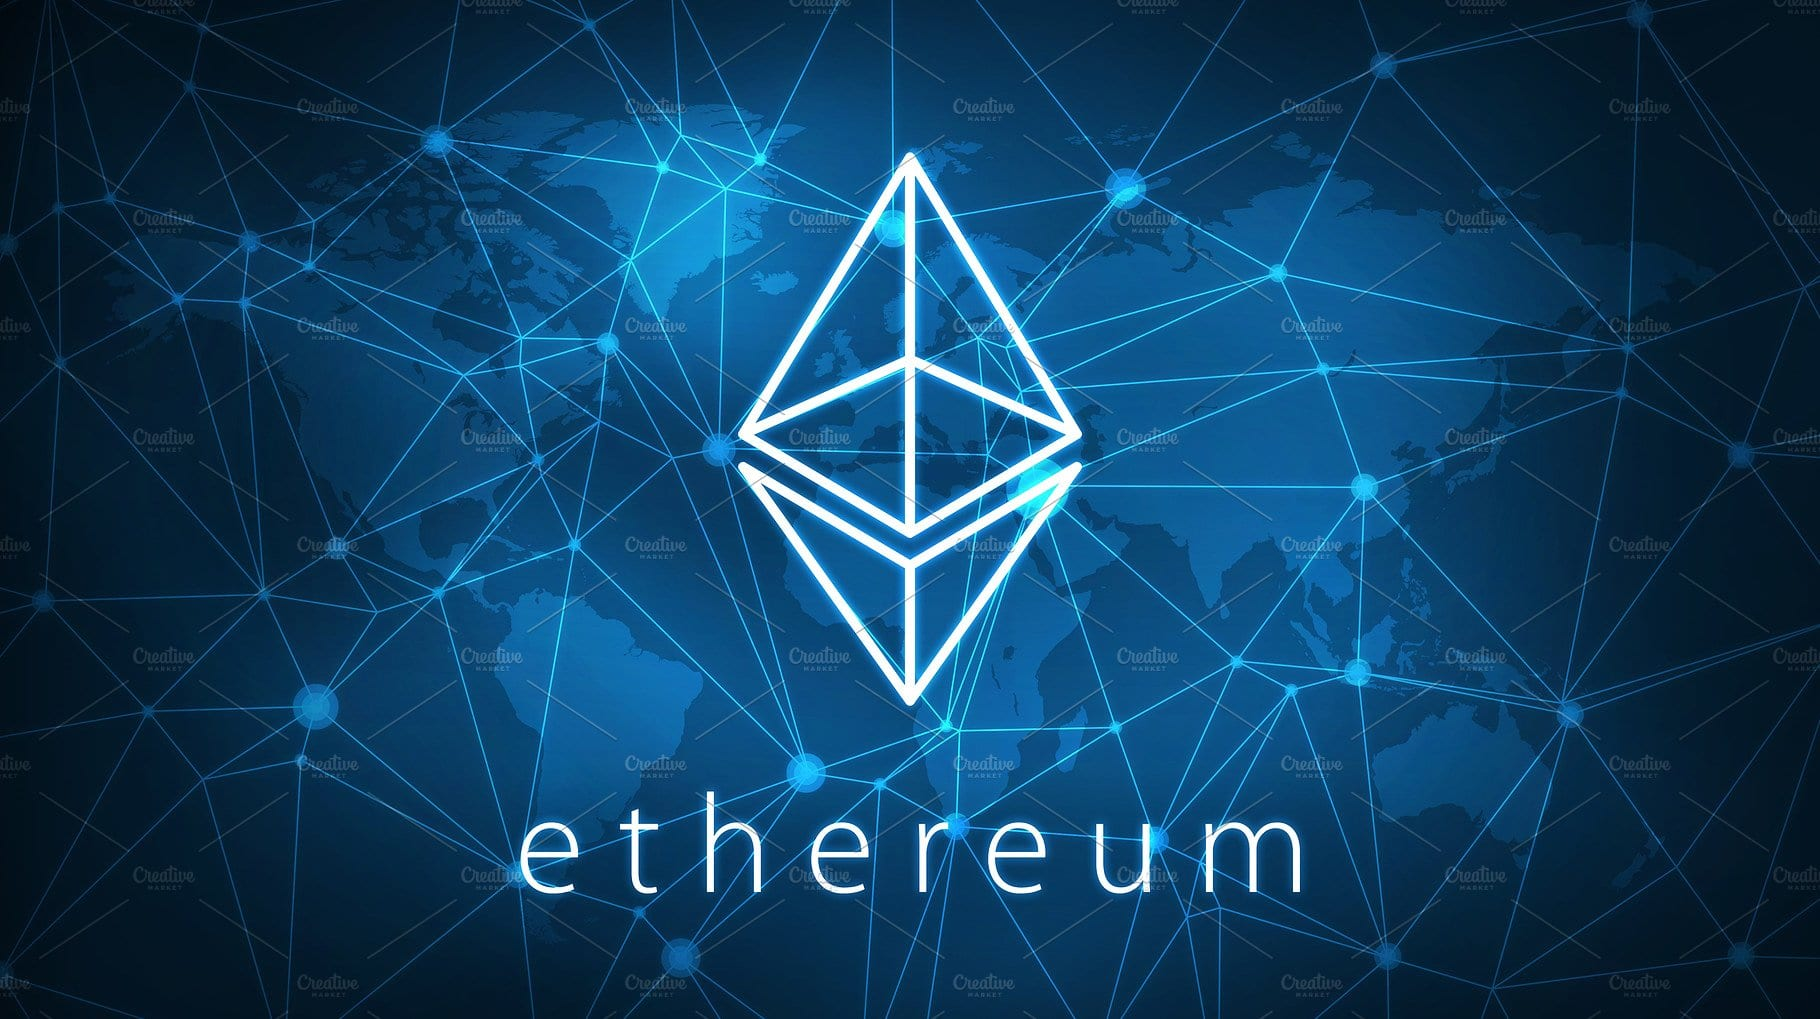 ce3ehnezwunldn7cuiddkwtrj3bh8qa65jrmxbi9vjhdbjorbchx21rsxij1ca7t  - Ethereum Price Prediction: ETH To Hit $484 In July And $1,450 In December This Year - Potential Price Surge Triggers